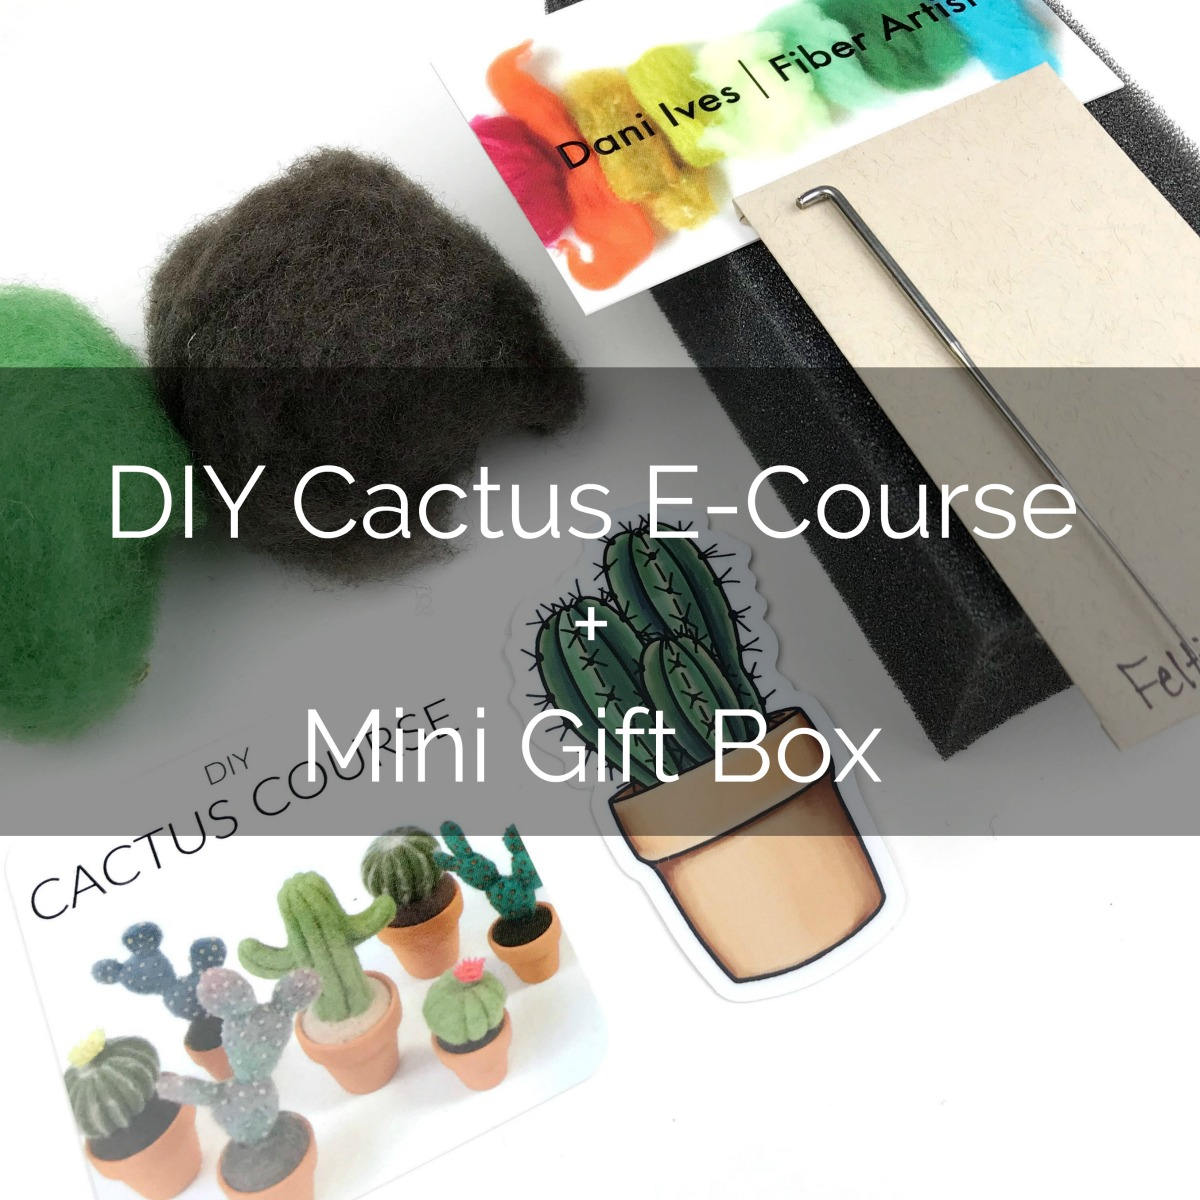 https://www.etsy.com/listing/571285021/diy-cactus-course-gift-card-with-mini?ref=listing-shop-header-0